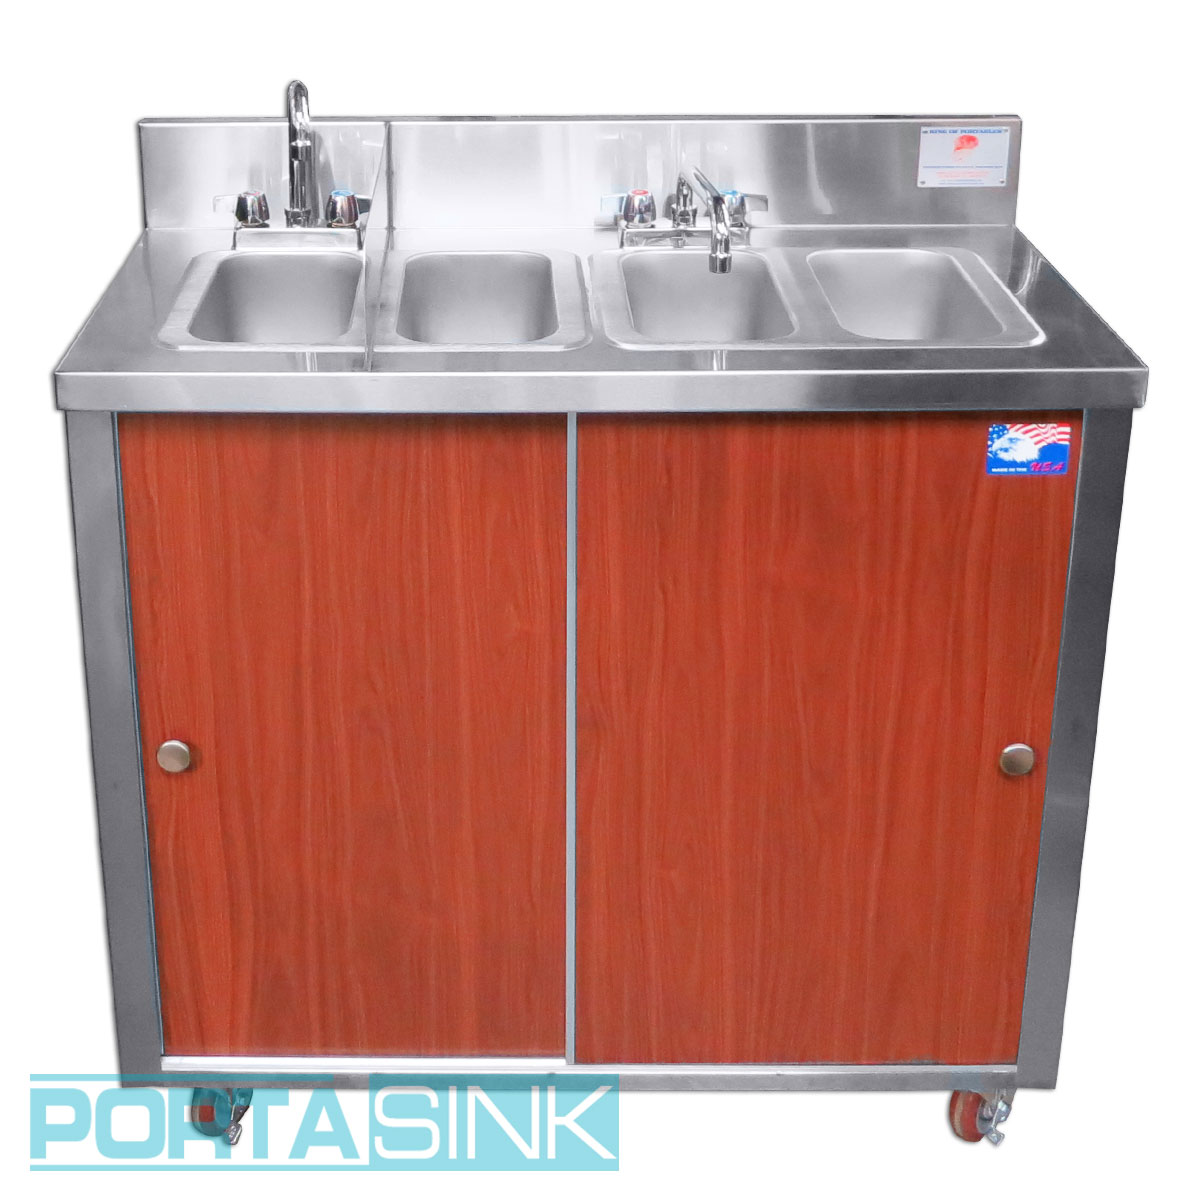 Portable Hand Sink, 4 Compartments, Wood Grade Aluminum Panels U2013 Portable  Sink U2013 Portable Sinks U0026 Portable Bars